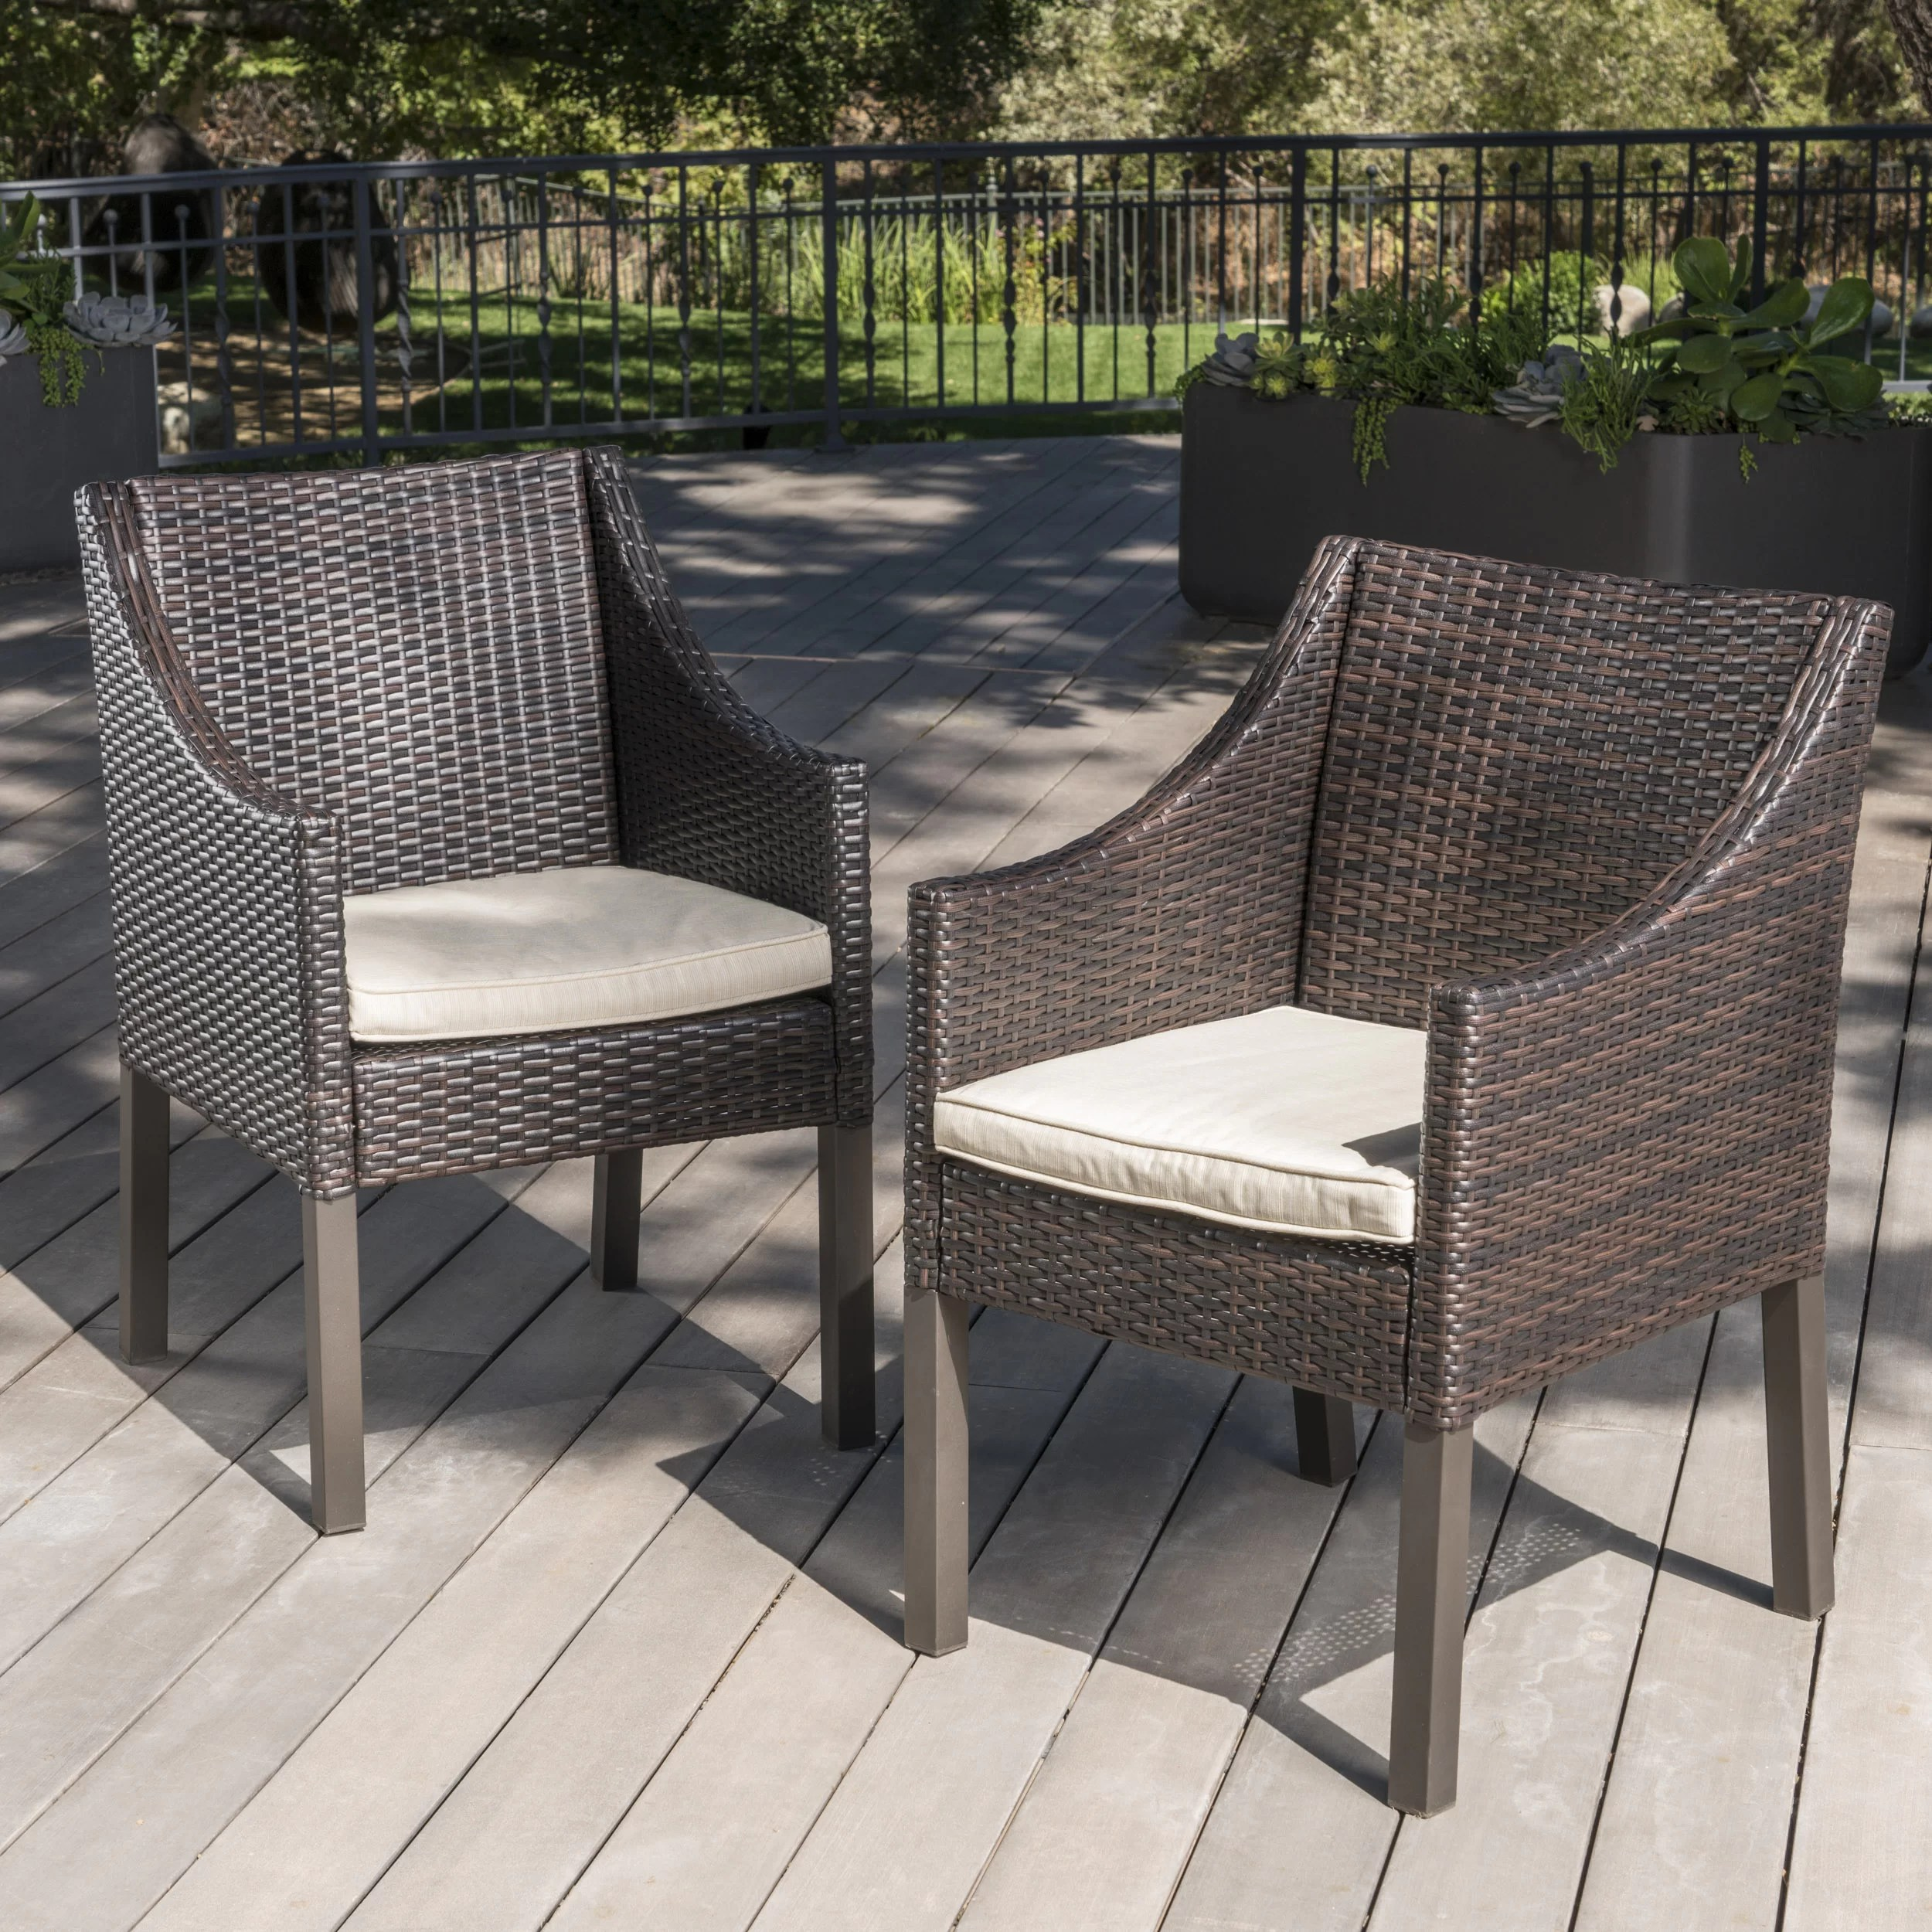 Outdoor Wicker Dining Chairs Portola Outdoor Wicker Patio Dining Chair